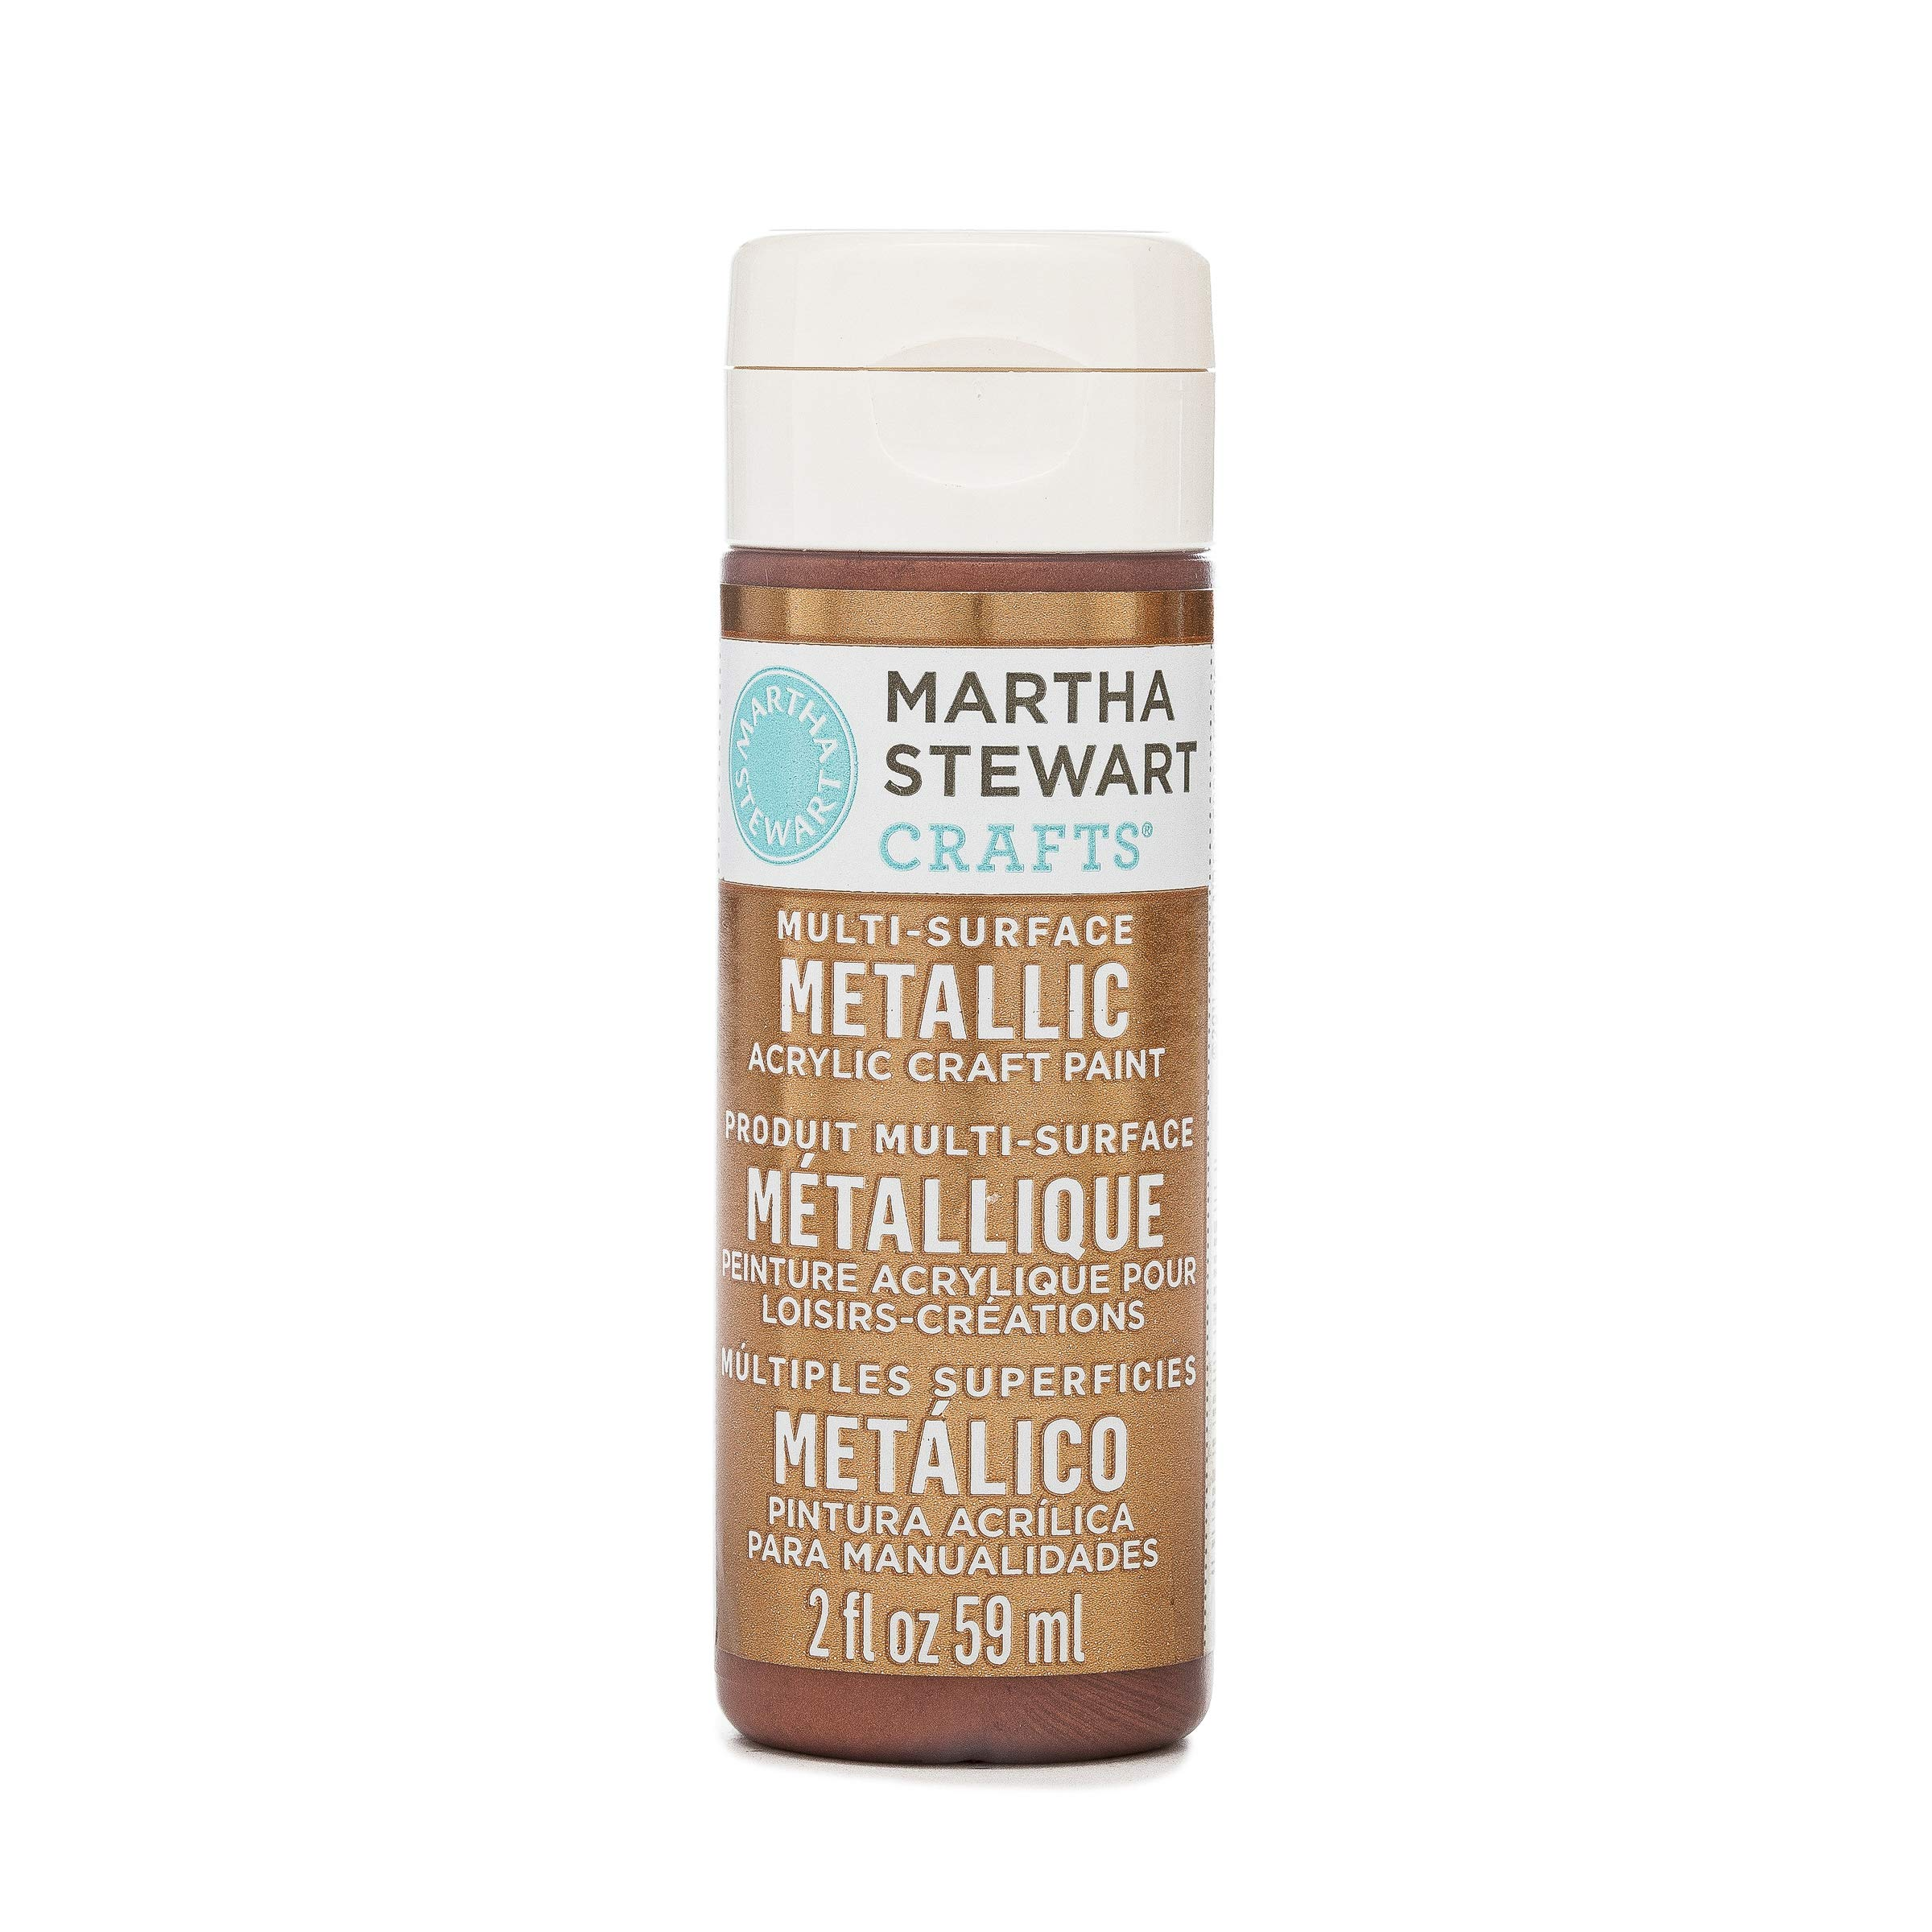 Martha Stewart Crafts Multi Surface Metallic Acrylic Craft Paint In Assorted Colors 2 Ounce 32110 Rust